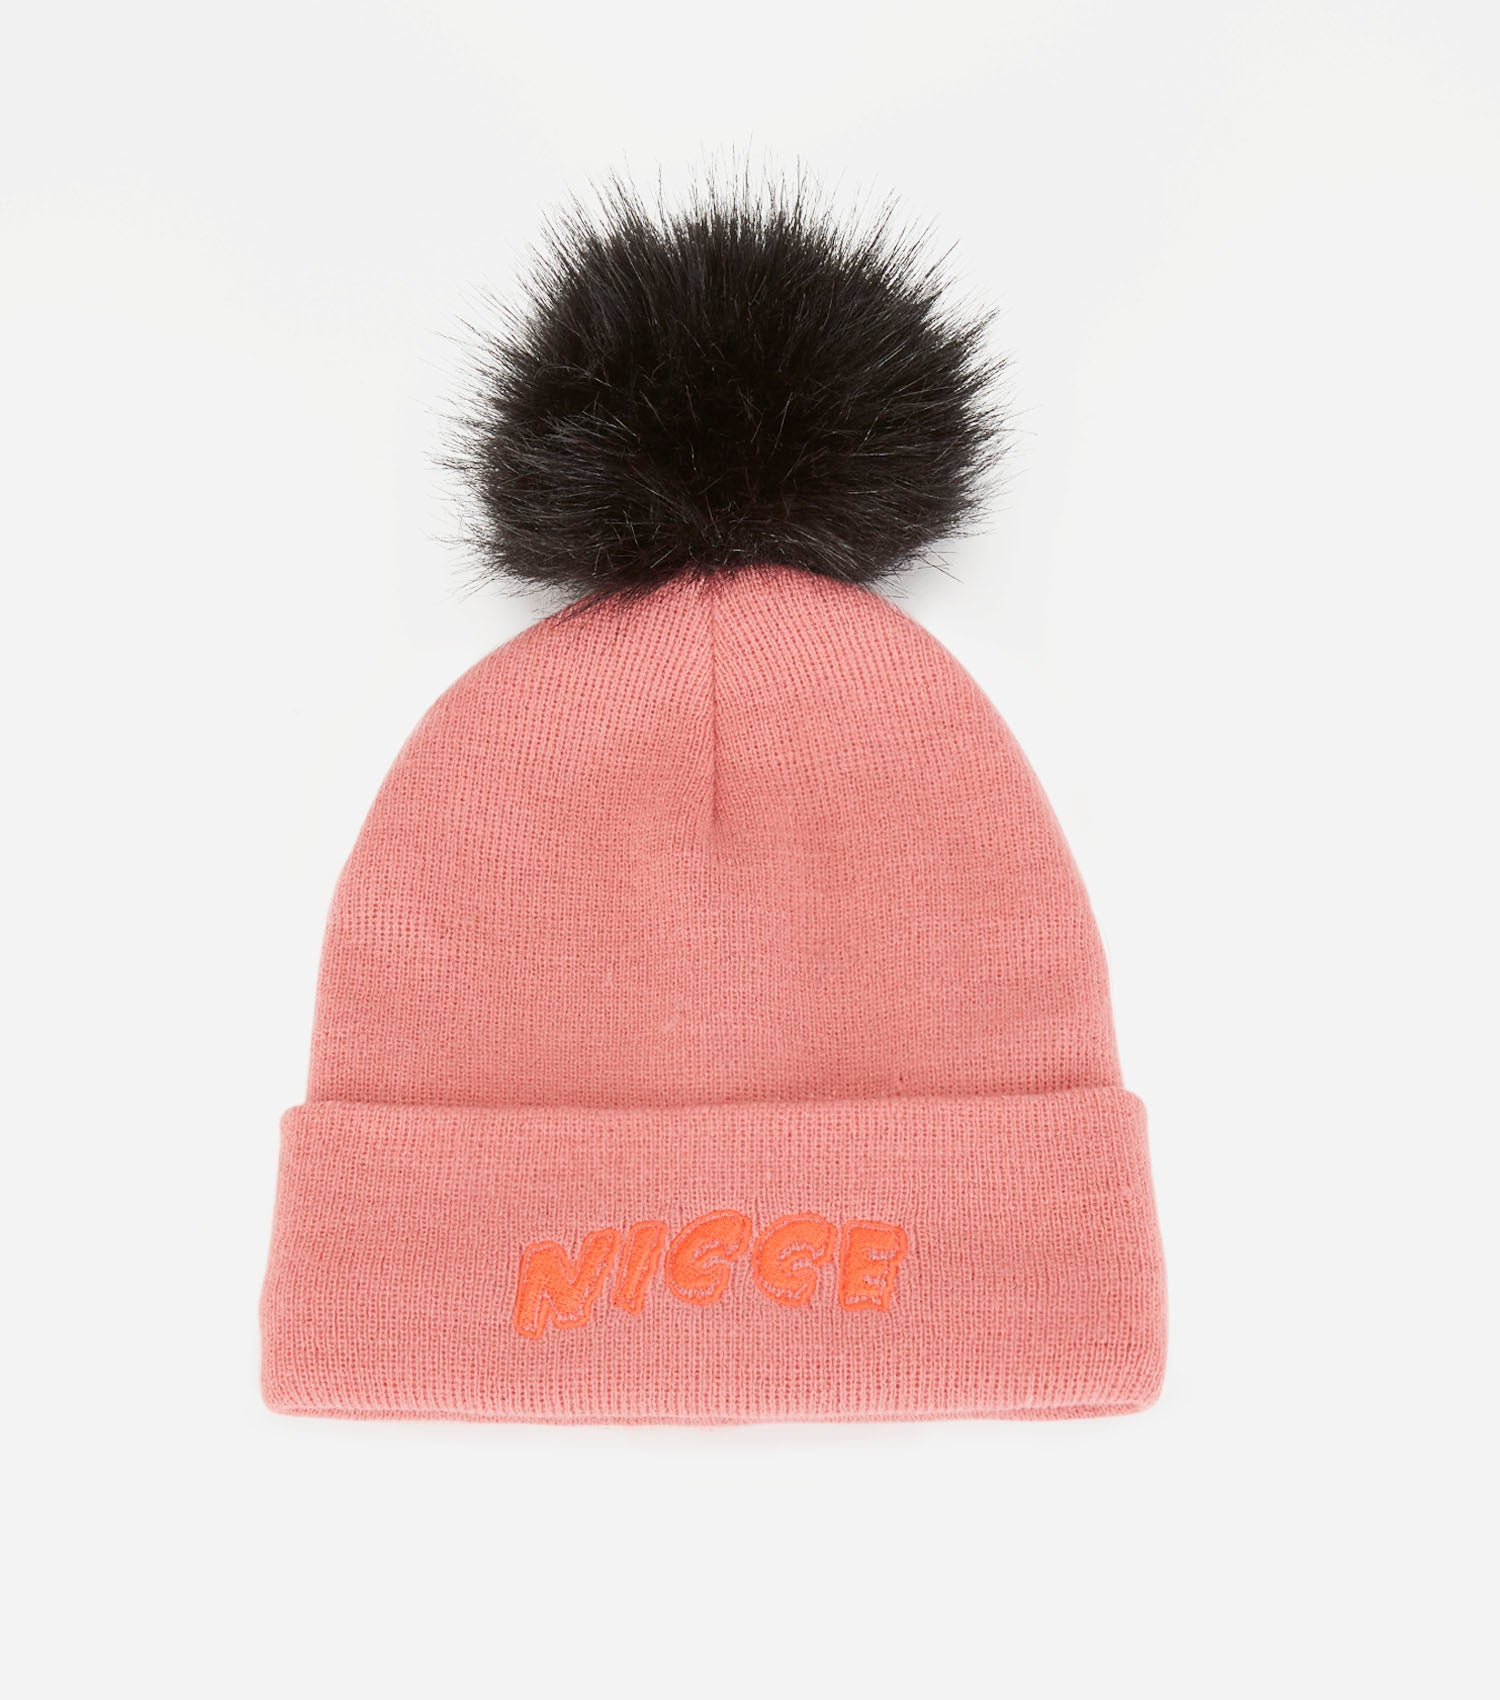 NICCE RISLEY BEANIE HAT | CANDLELIGHT PEACH / BLACK, Hats